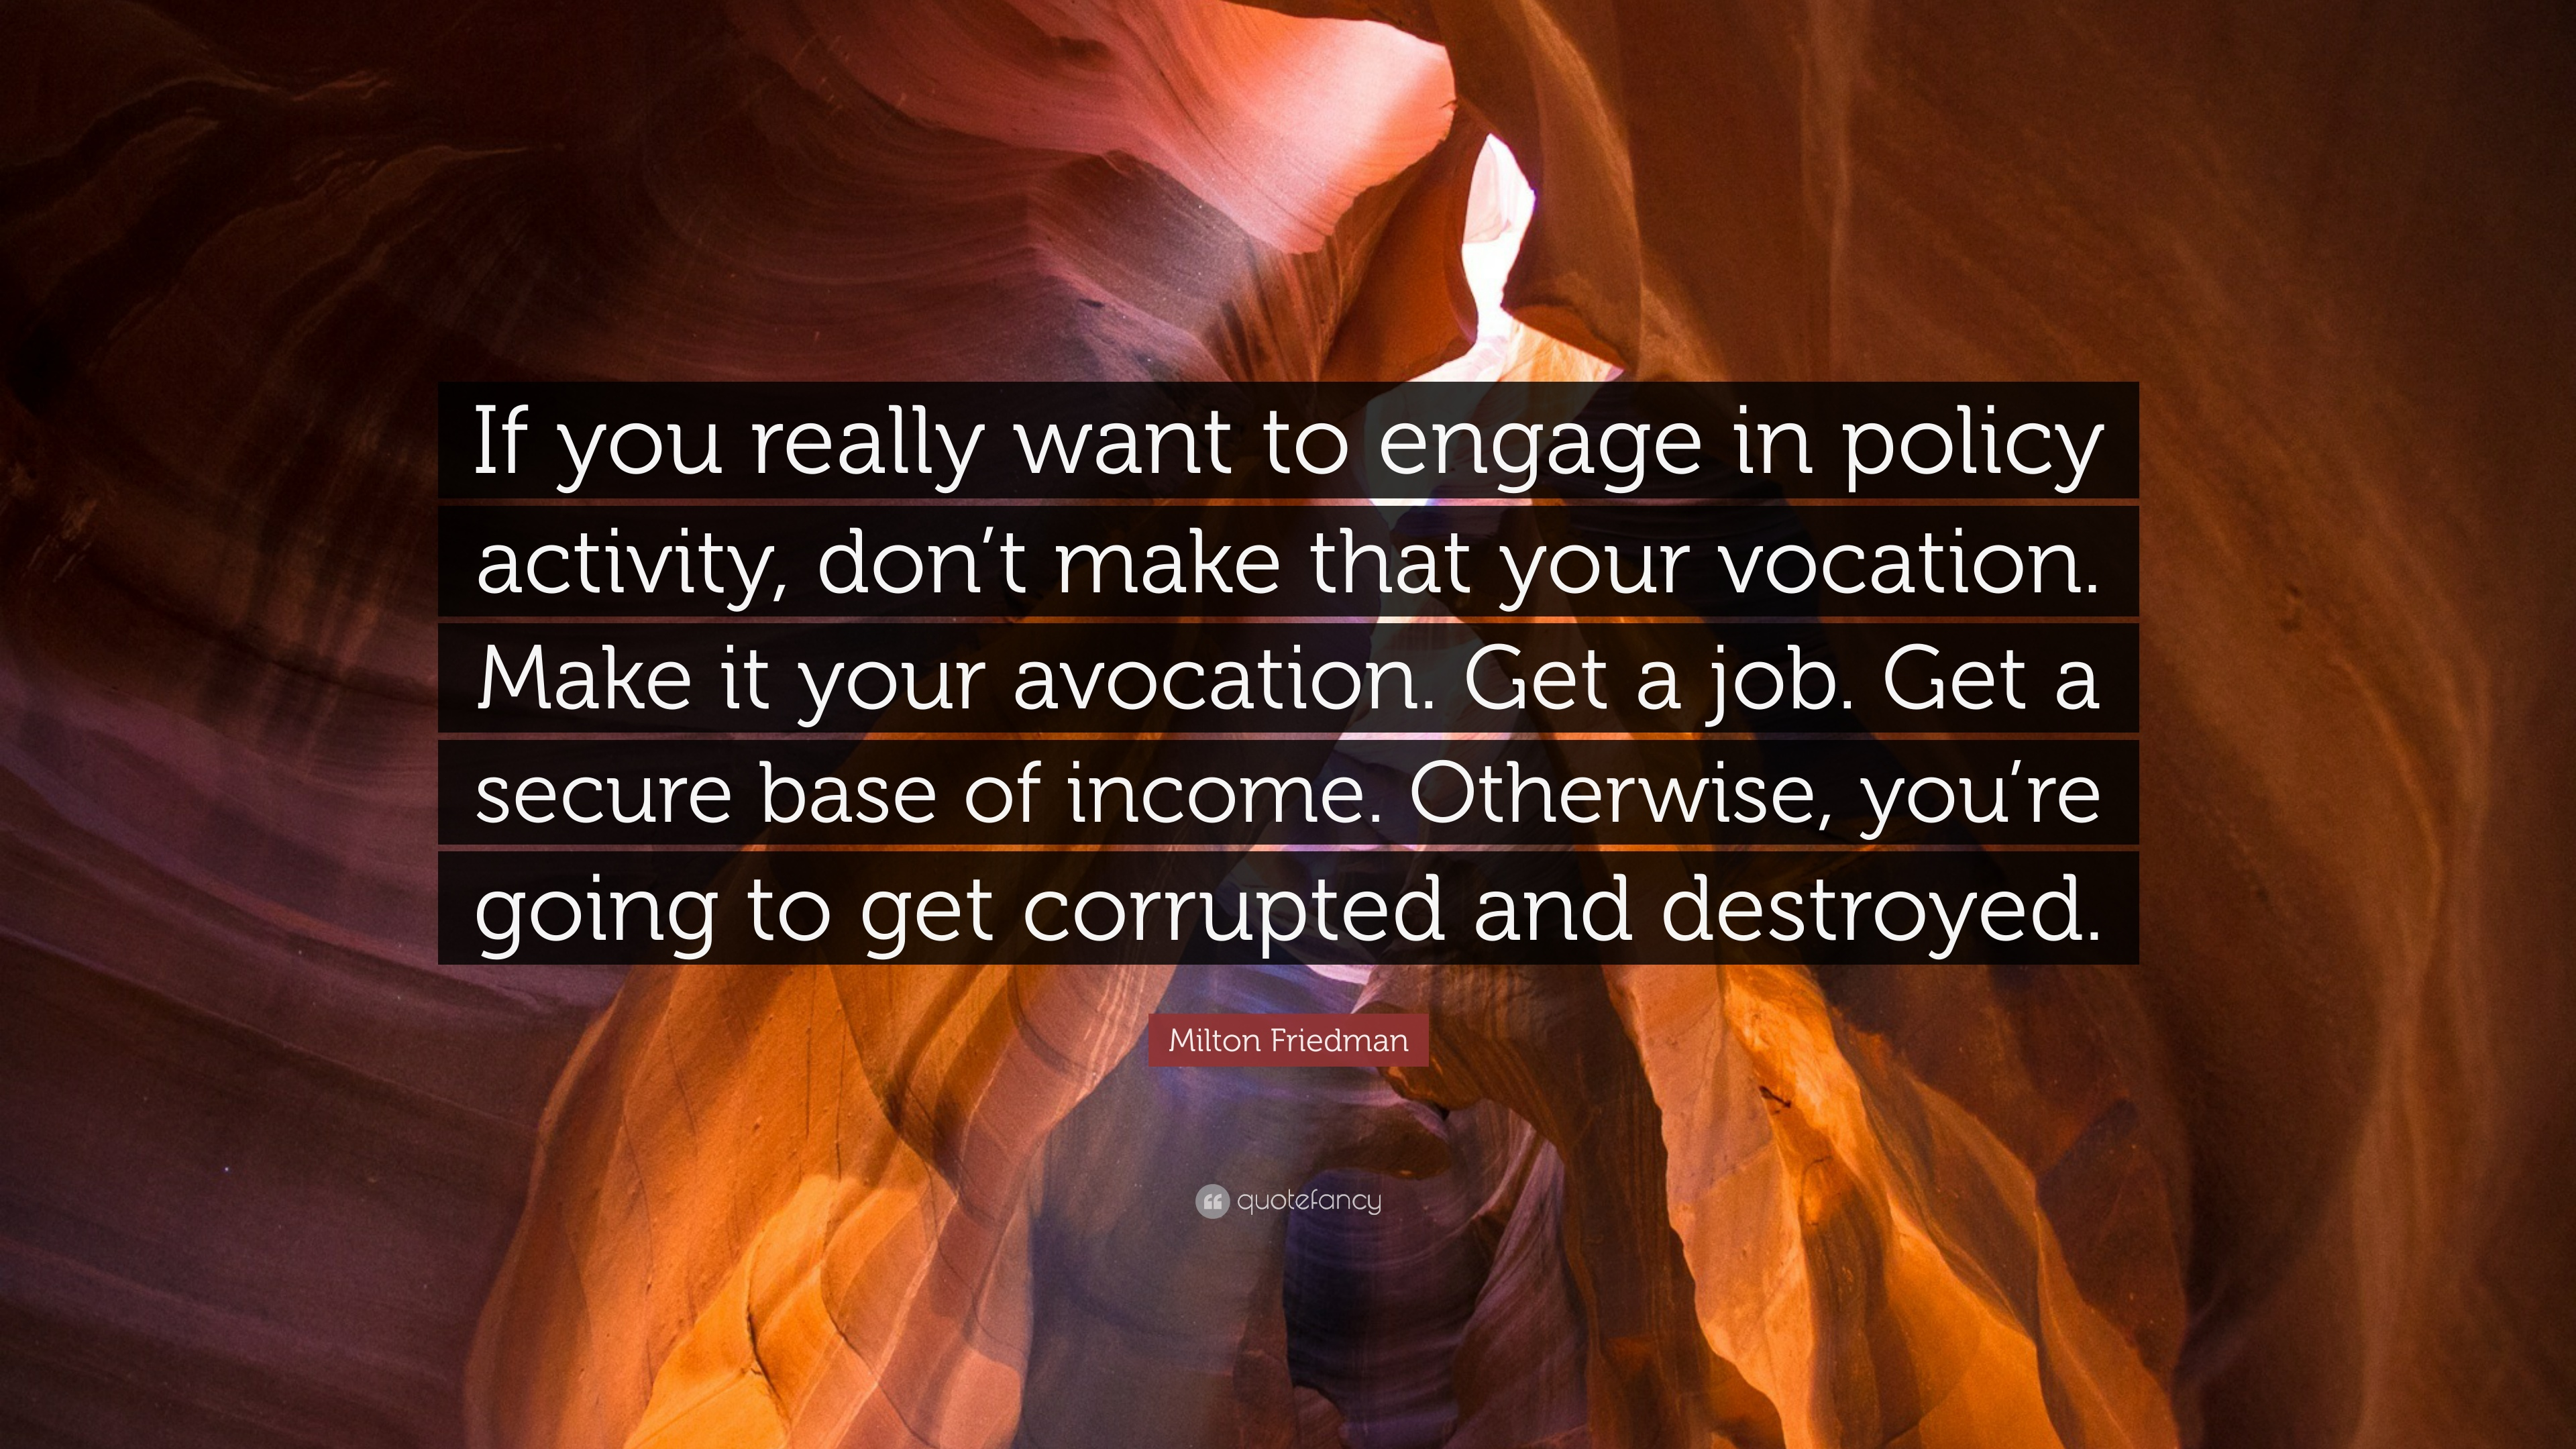 milton friedman quote if you really want to engage in policy milton friedman quote if you really want to engage in policy activity don